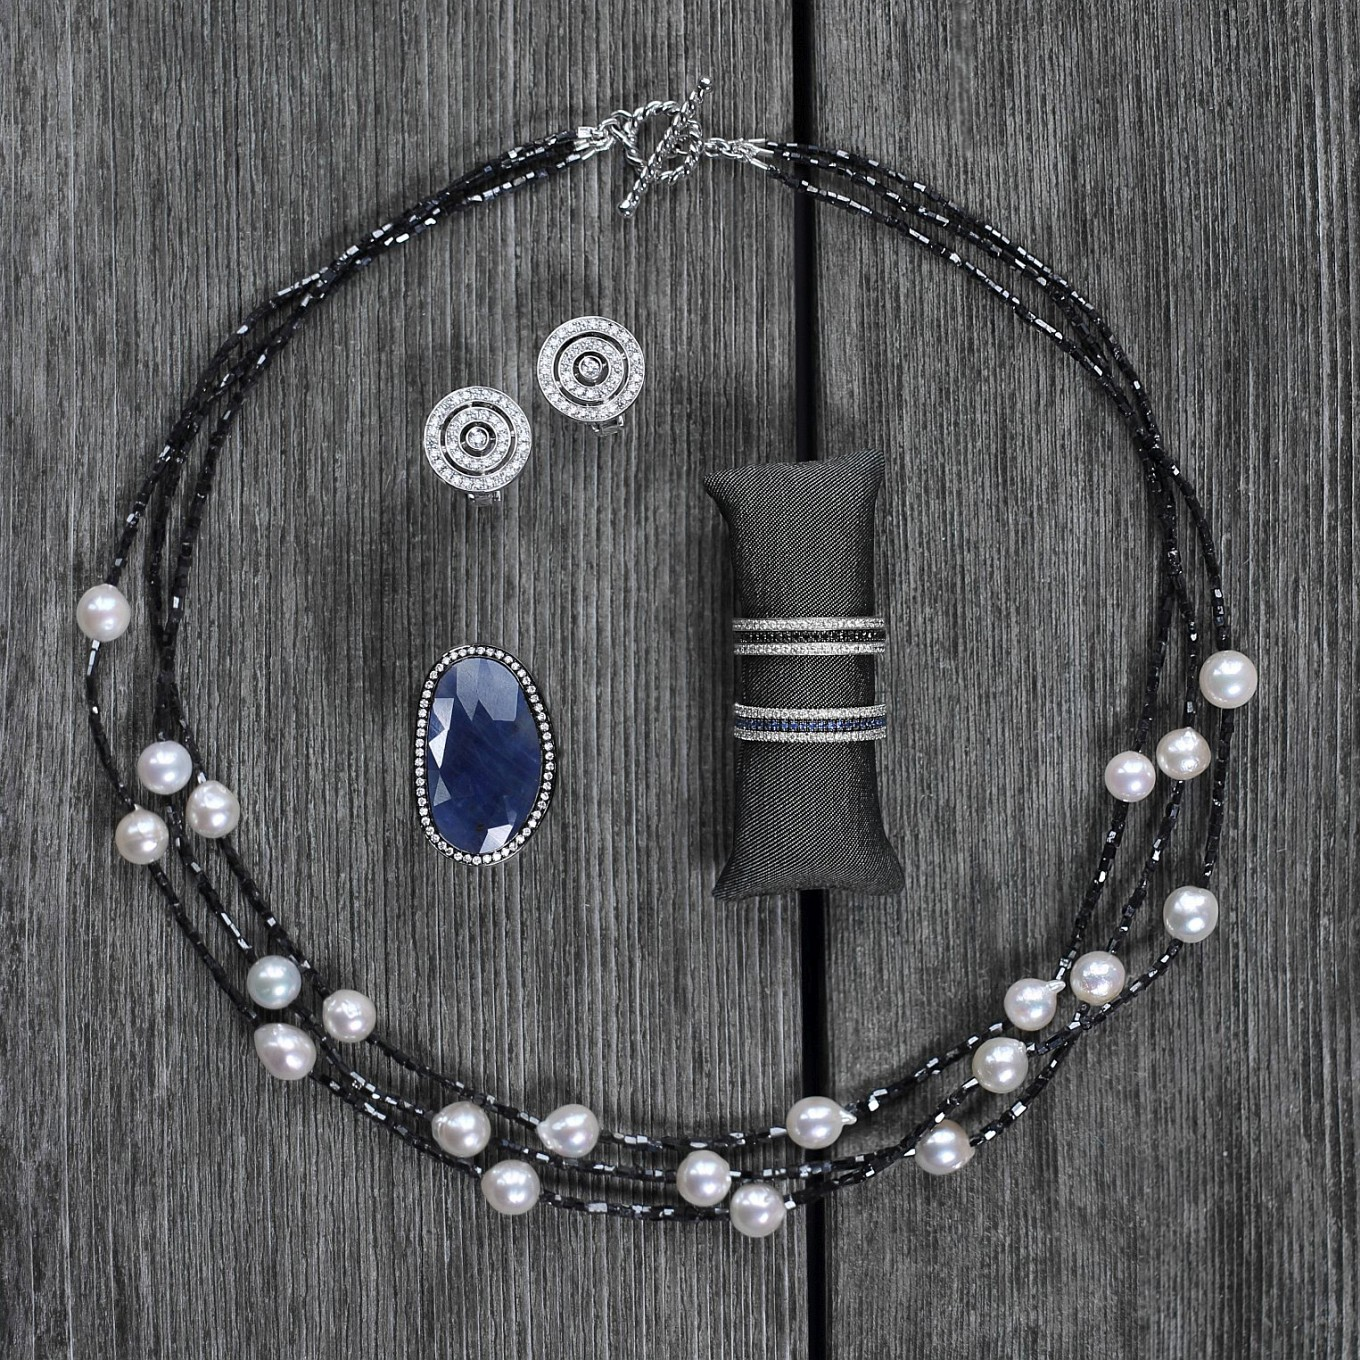 Clockwise from top left: Double Circle diamond earrings  -  JdJ Eternity bands -  Sapphire slice & Diamond ring - Black diamond & freshwater pearl necklace with white gold bar clasp